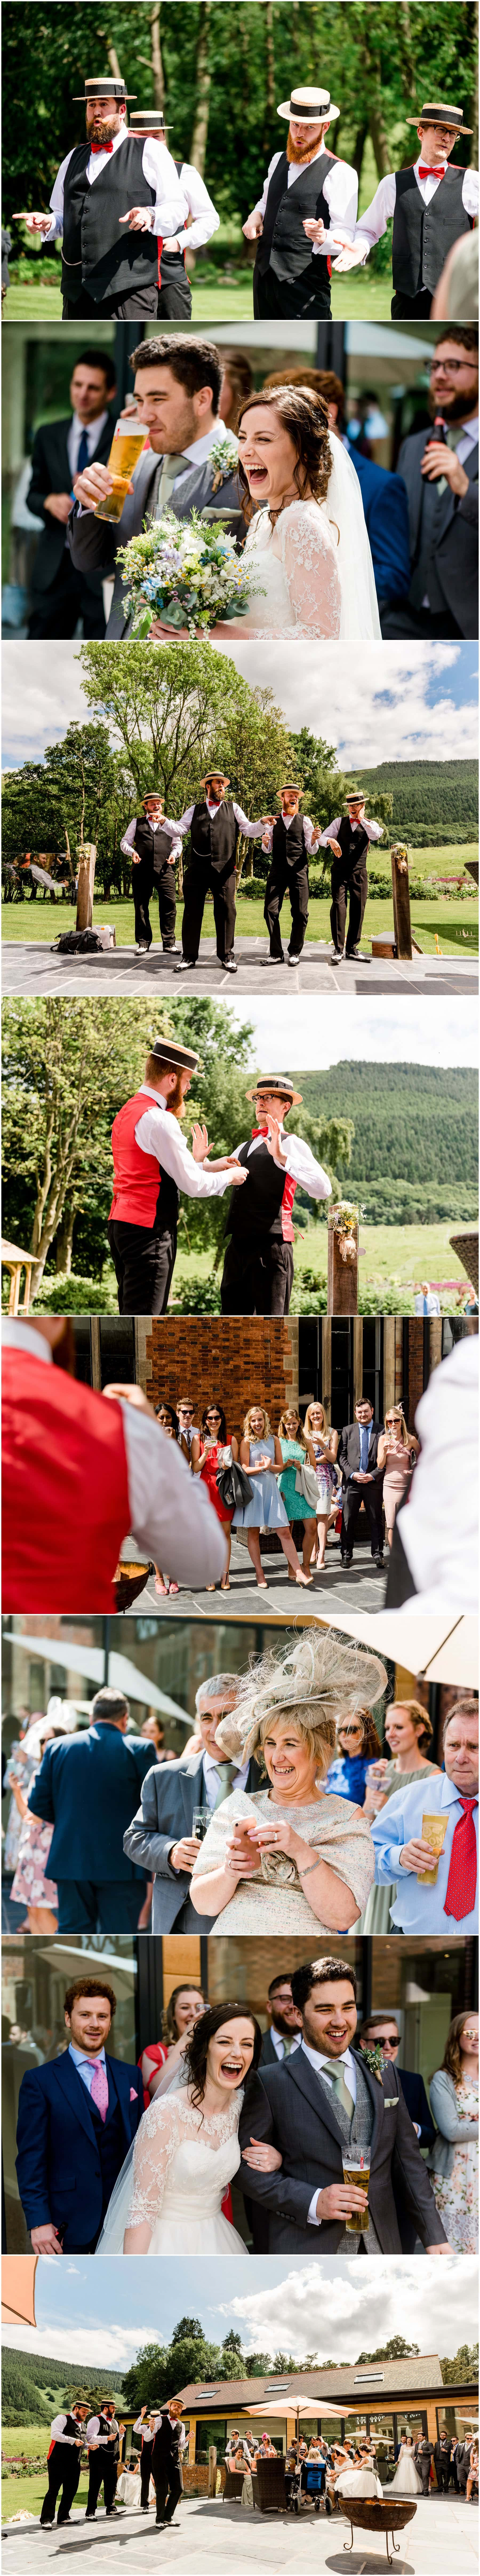 Ffion and Hefin's beautiful, elegant summer wedding at Ten Dwr Hall in Llangollen, Wales with wild flowers and sage colours by West Midlands and Wales Wedding photographer Lisa Carpenter Photography, specialising in cool, contemporary wedding photos. Afternoon Delight Barbershop Quartet.